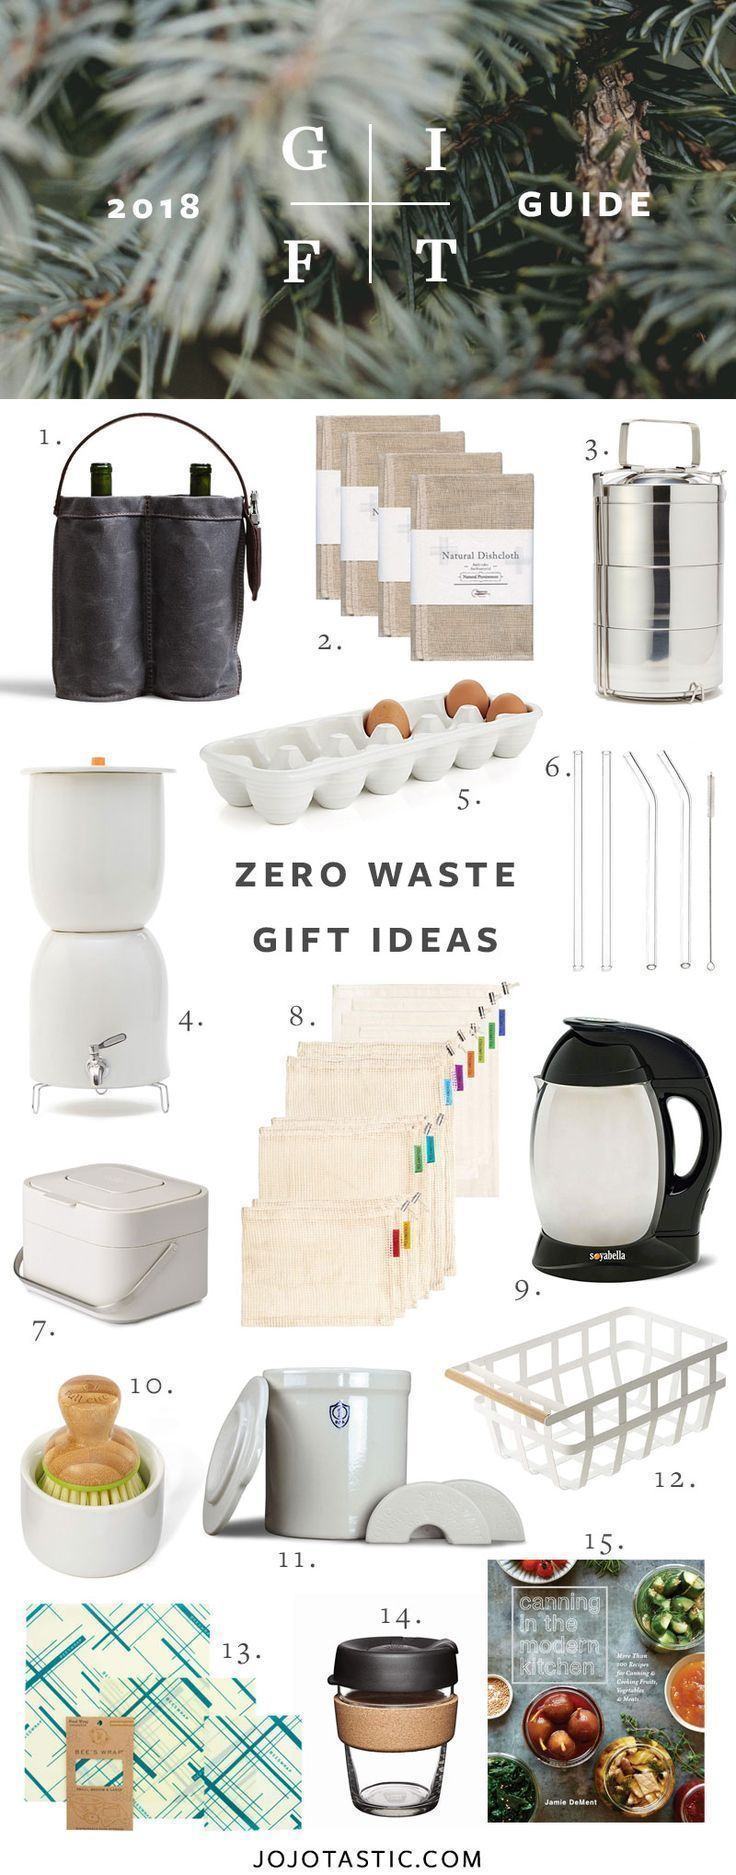 Zero Waste Gift Ideas for the Eco-Conscious | Gift Guide 2018 | Jojotastic